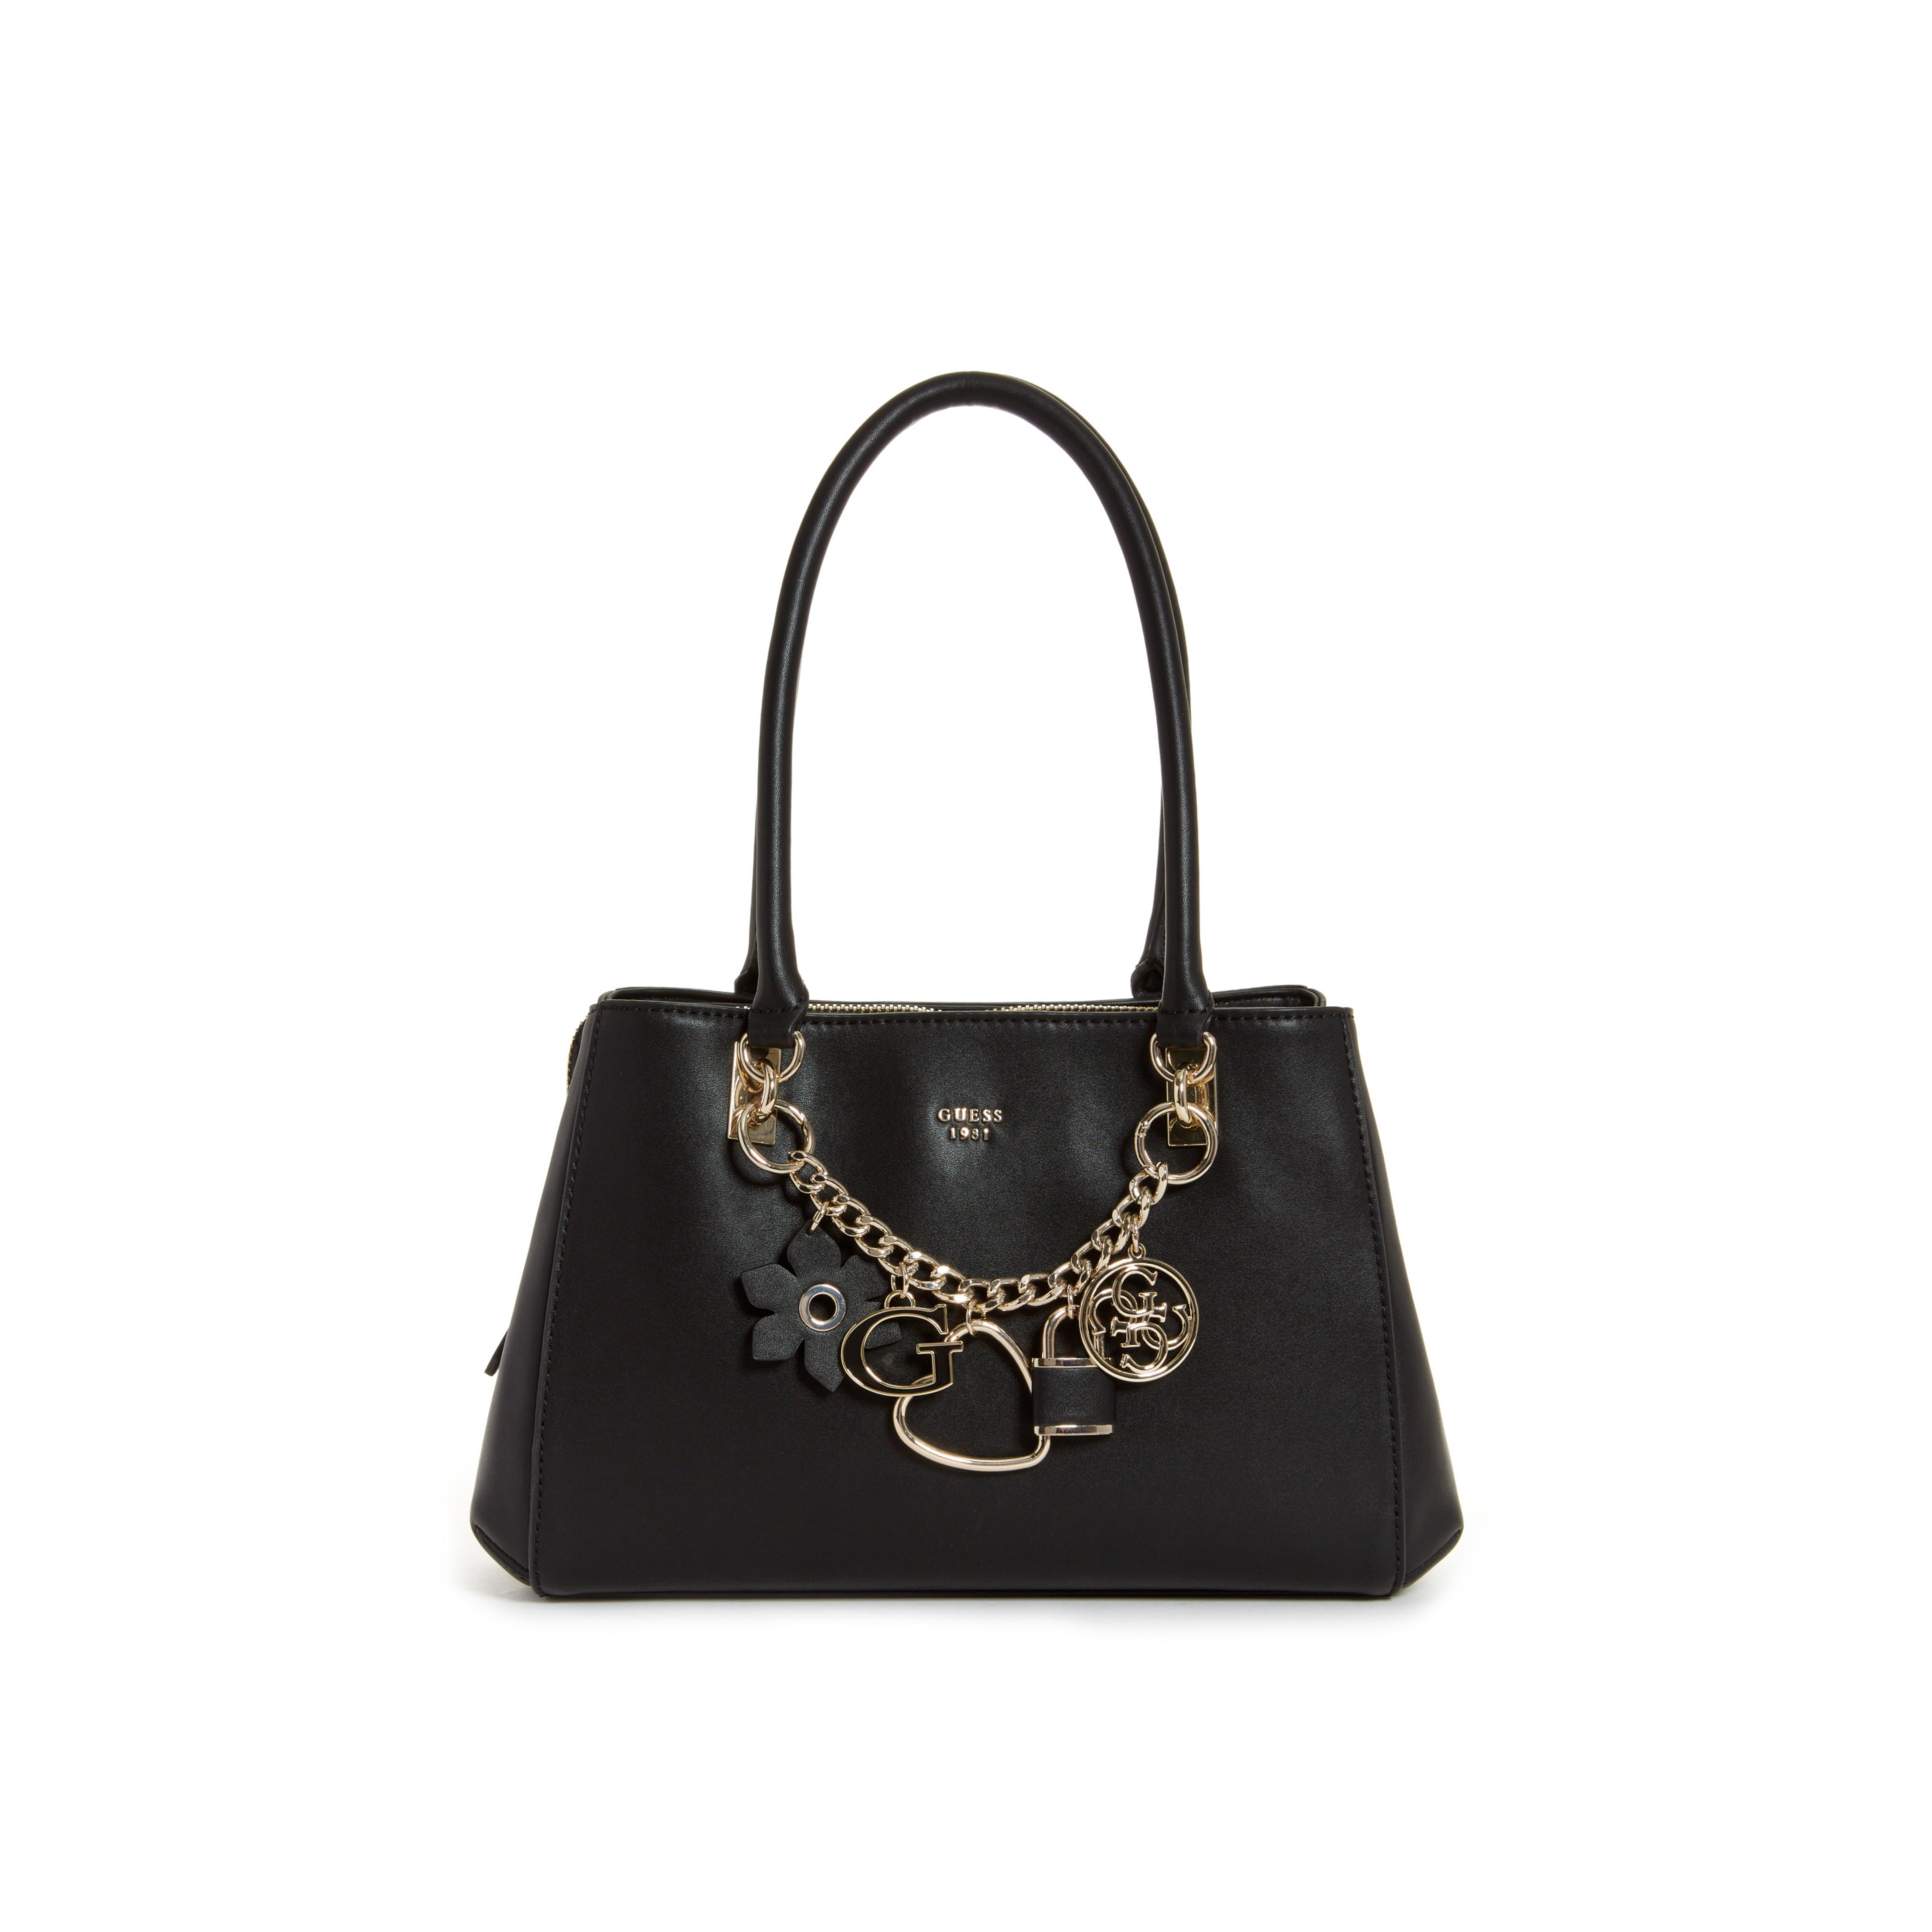 Sale Best Store To Get For Sale Buy Authentic Online Guess Satchel Bags - Hadley Girlfriend Satchel Bag Multi - - Satchel Bags for ladies Buy Cheap Classic 014DS